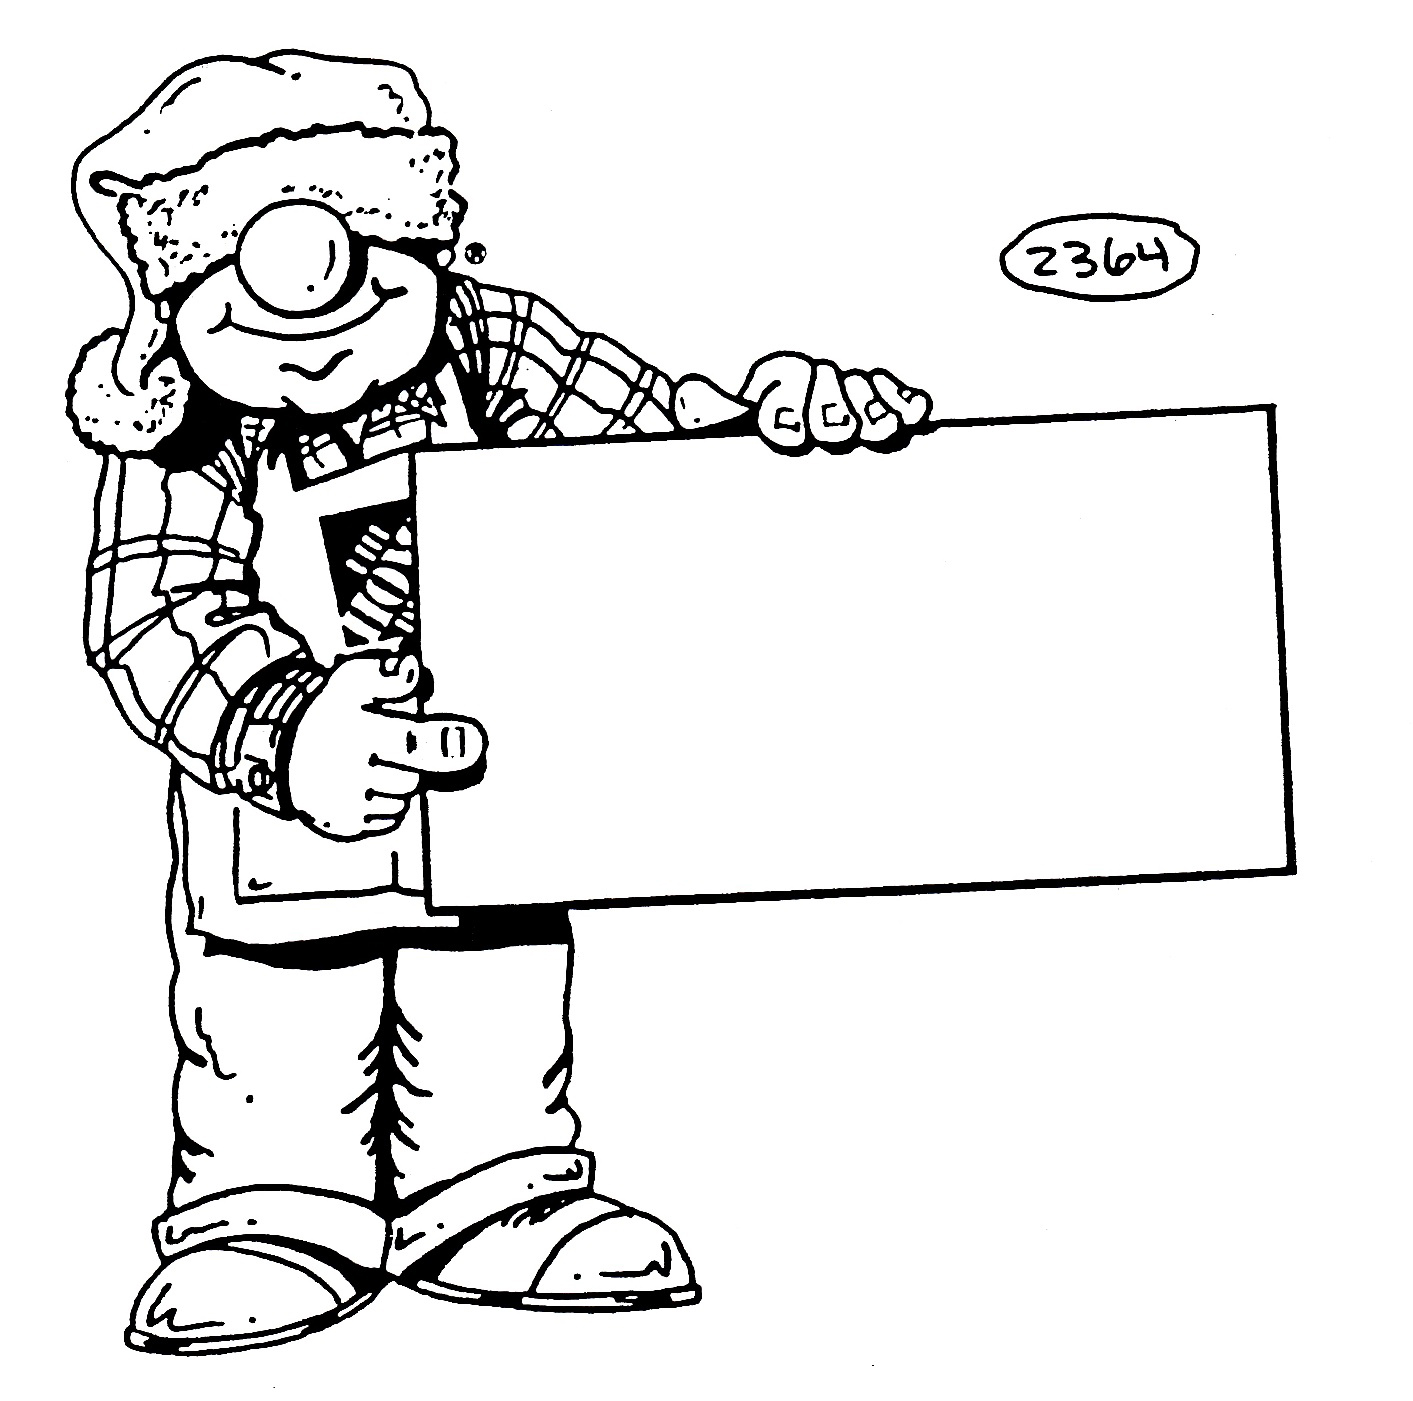 Home Depot Homer Coloring Pages free image